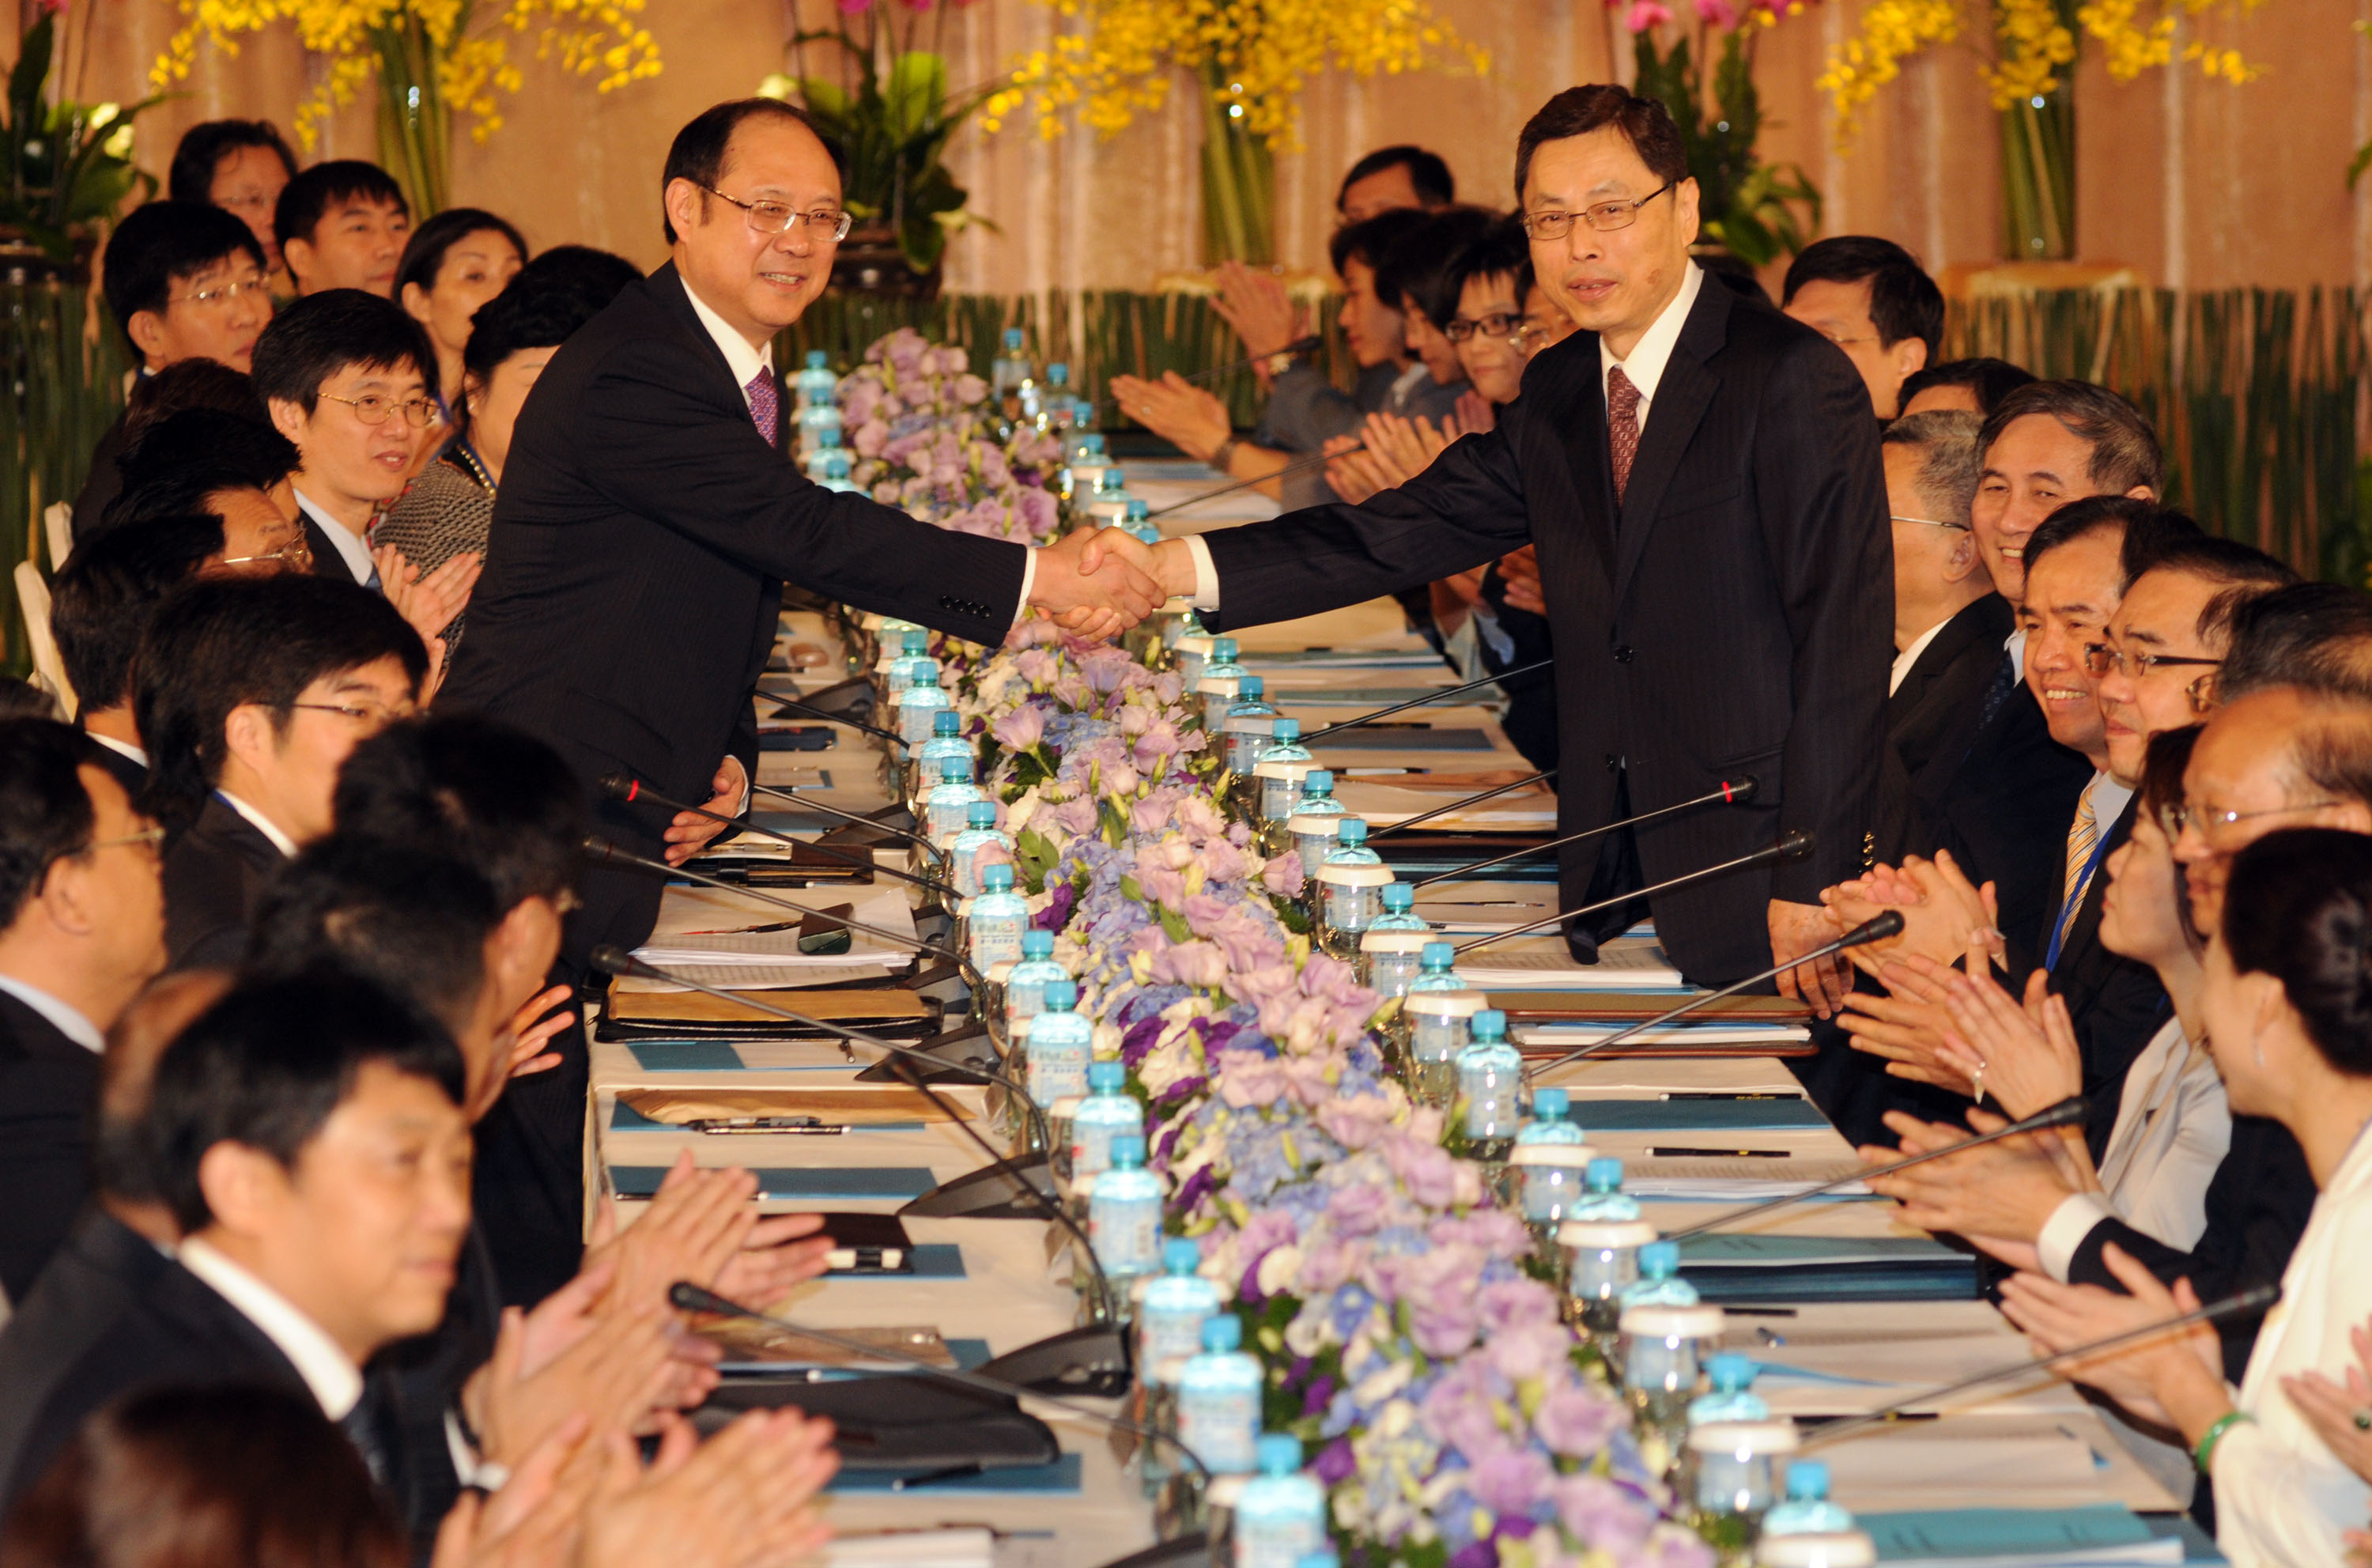 Taiwan's Straits Exchange Foundation Vice Chairman Kao Koong-lian, right, shakes hands with China's Association for Relations Across the Taiwan Strait...